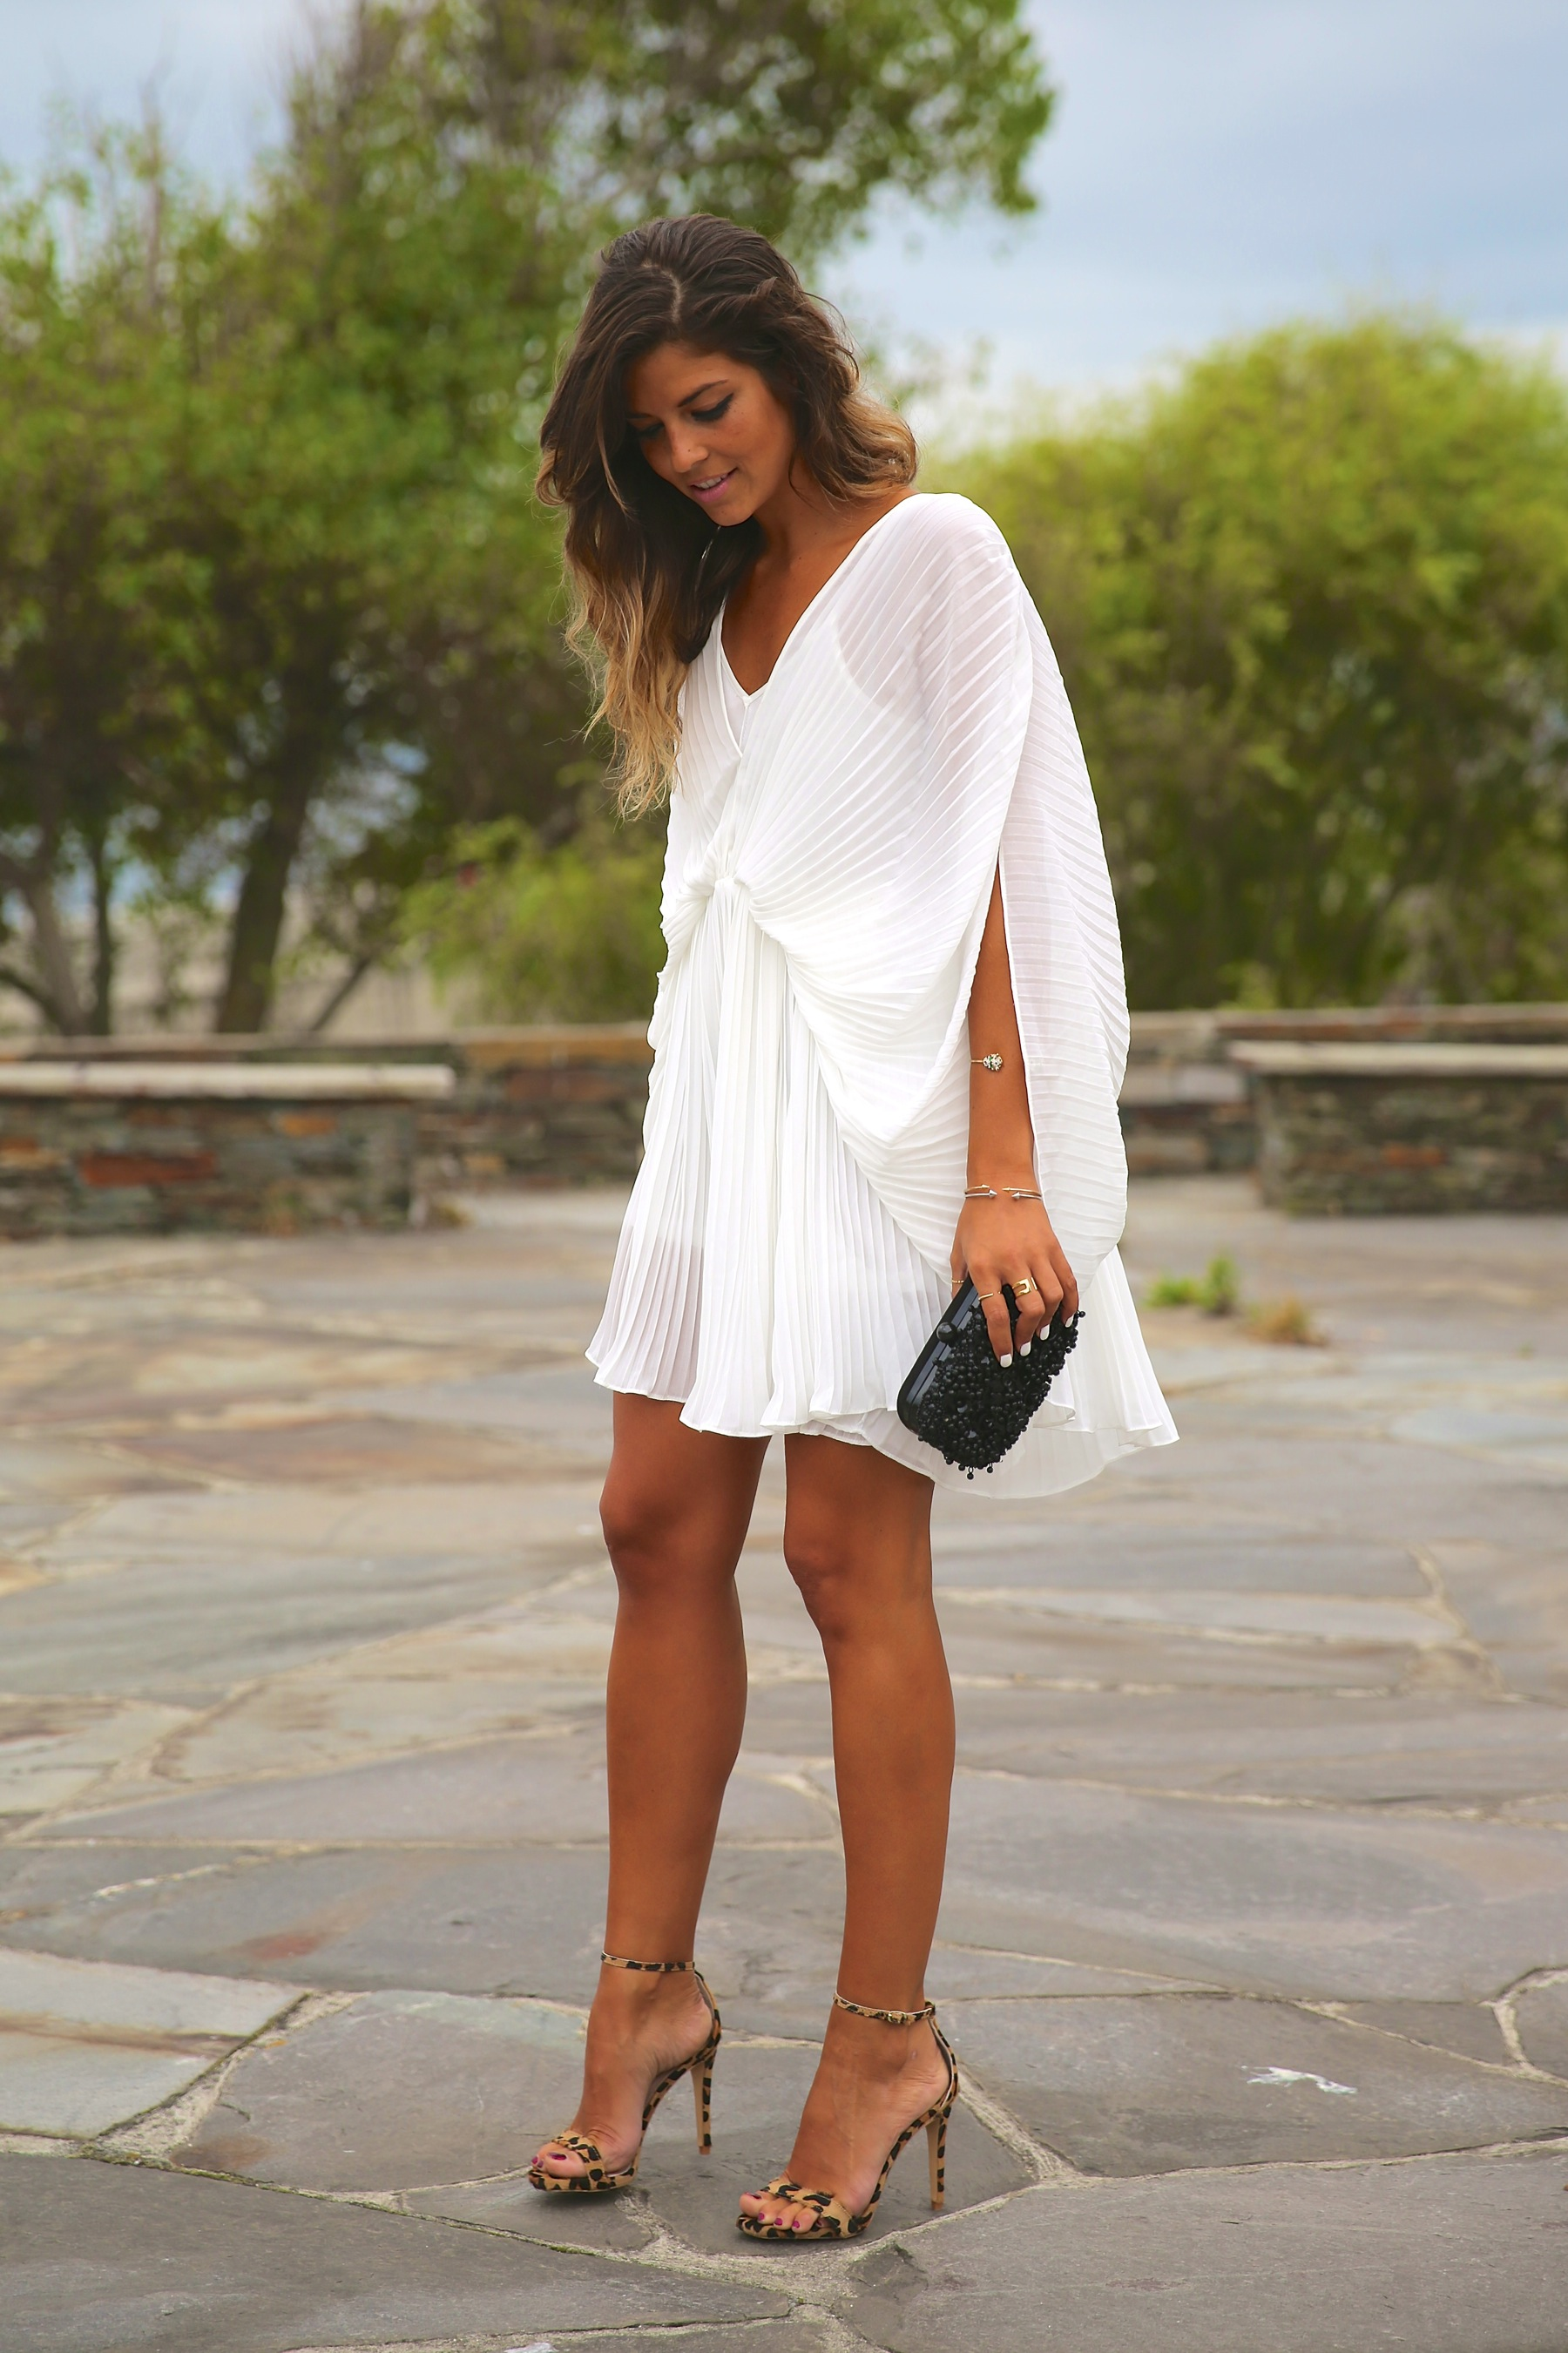 trendy_taste-look-outfit-street_style-fashion_spain-moda_españa-blog-blogger-vestido_blanco-white_dress-müic-jewels-joyas-leo_sandals-sandalias_leopardo-clutch_pedreria-15